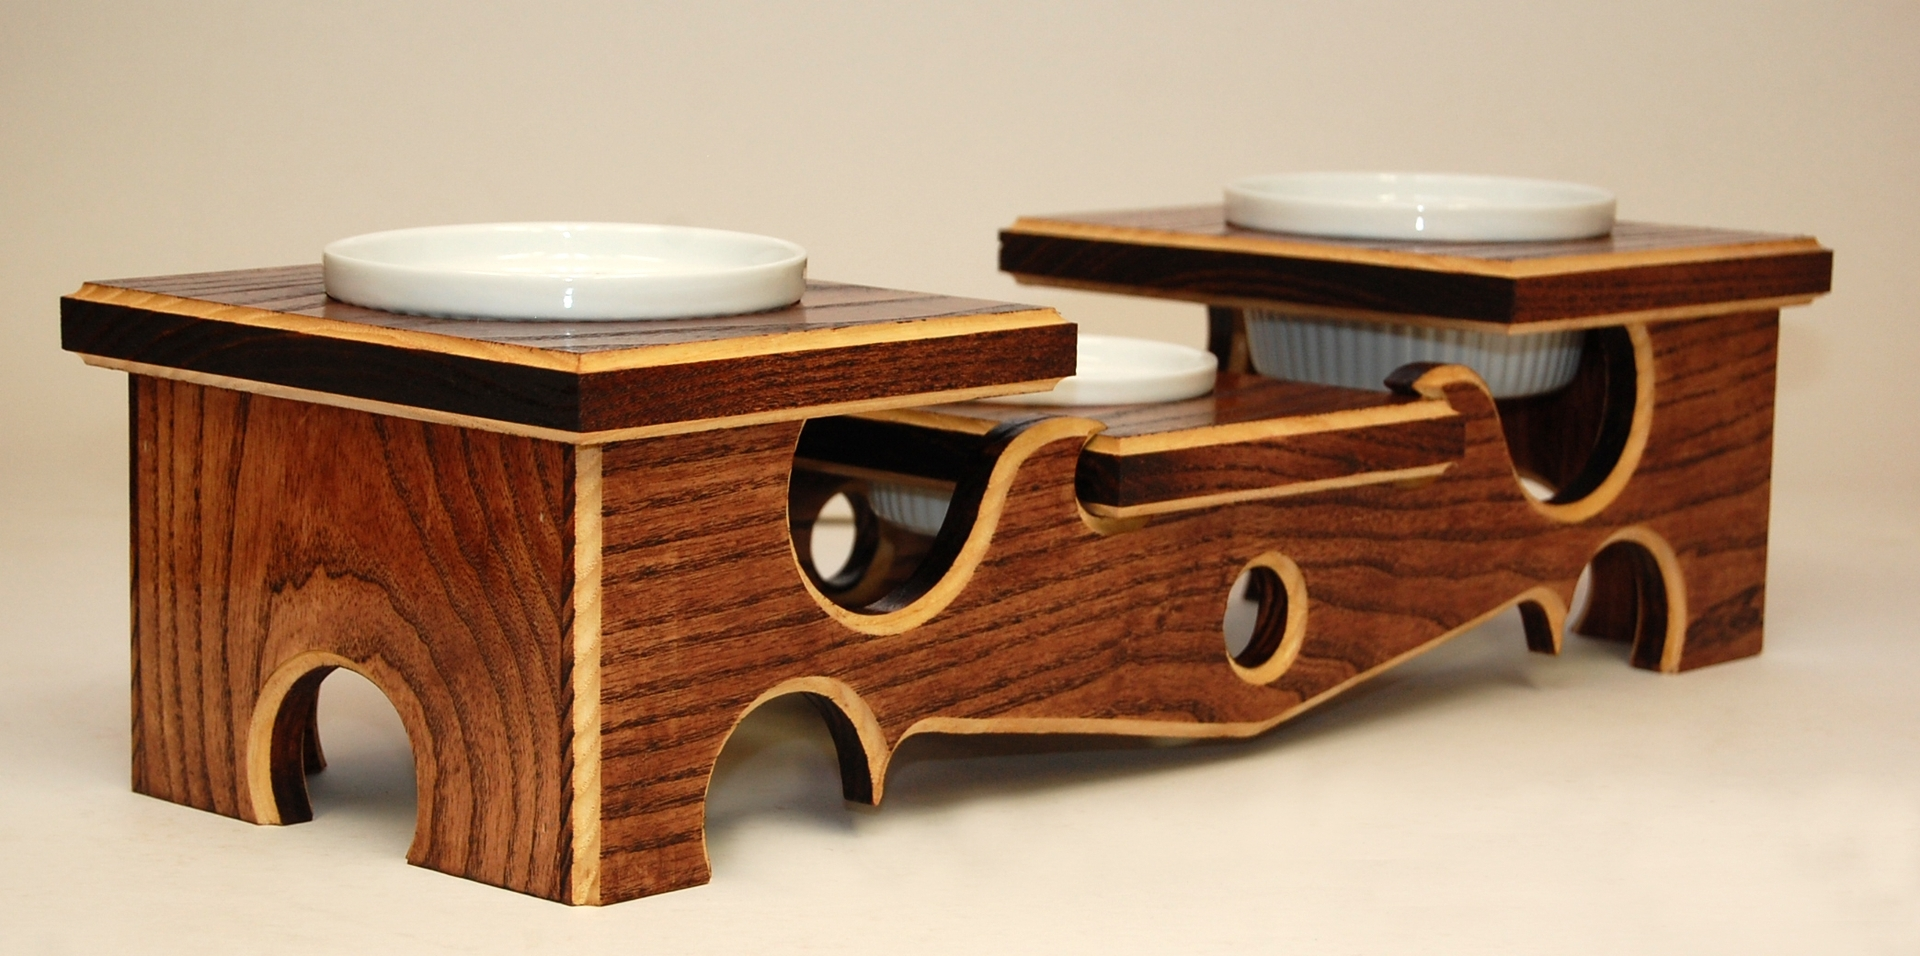 Silhouette Elevated Pet Feeder by Baro Woodworks at CustomMade.com